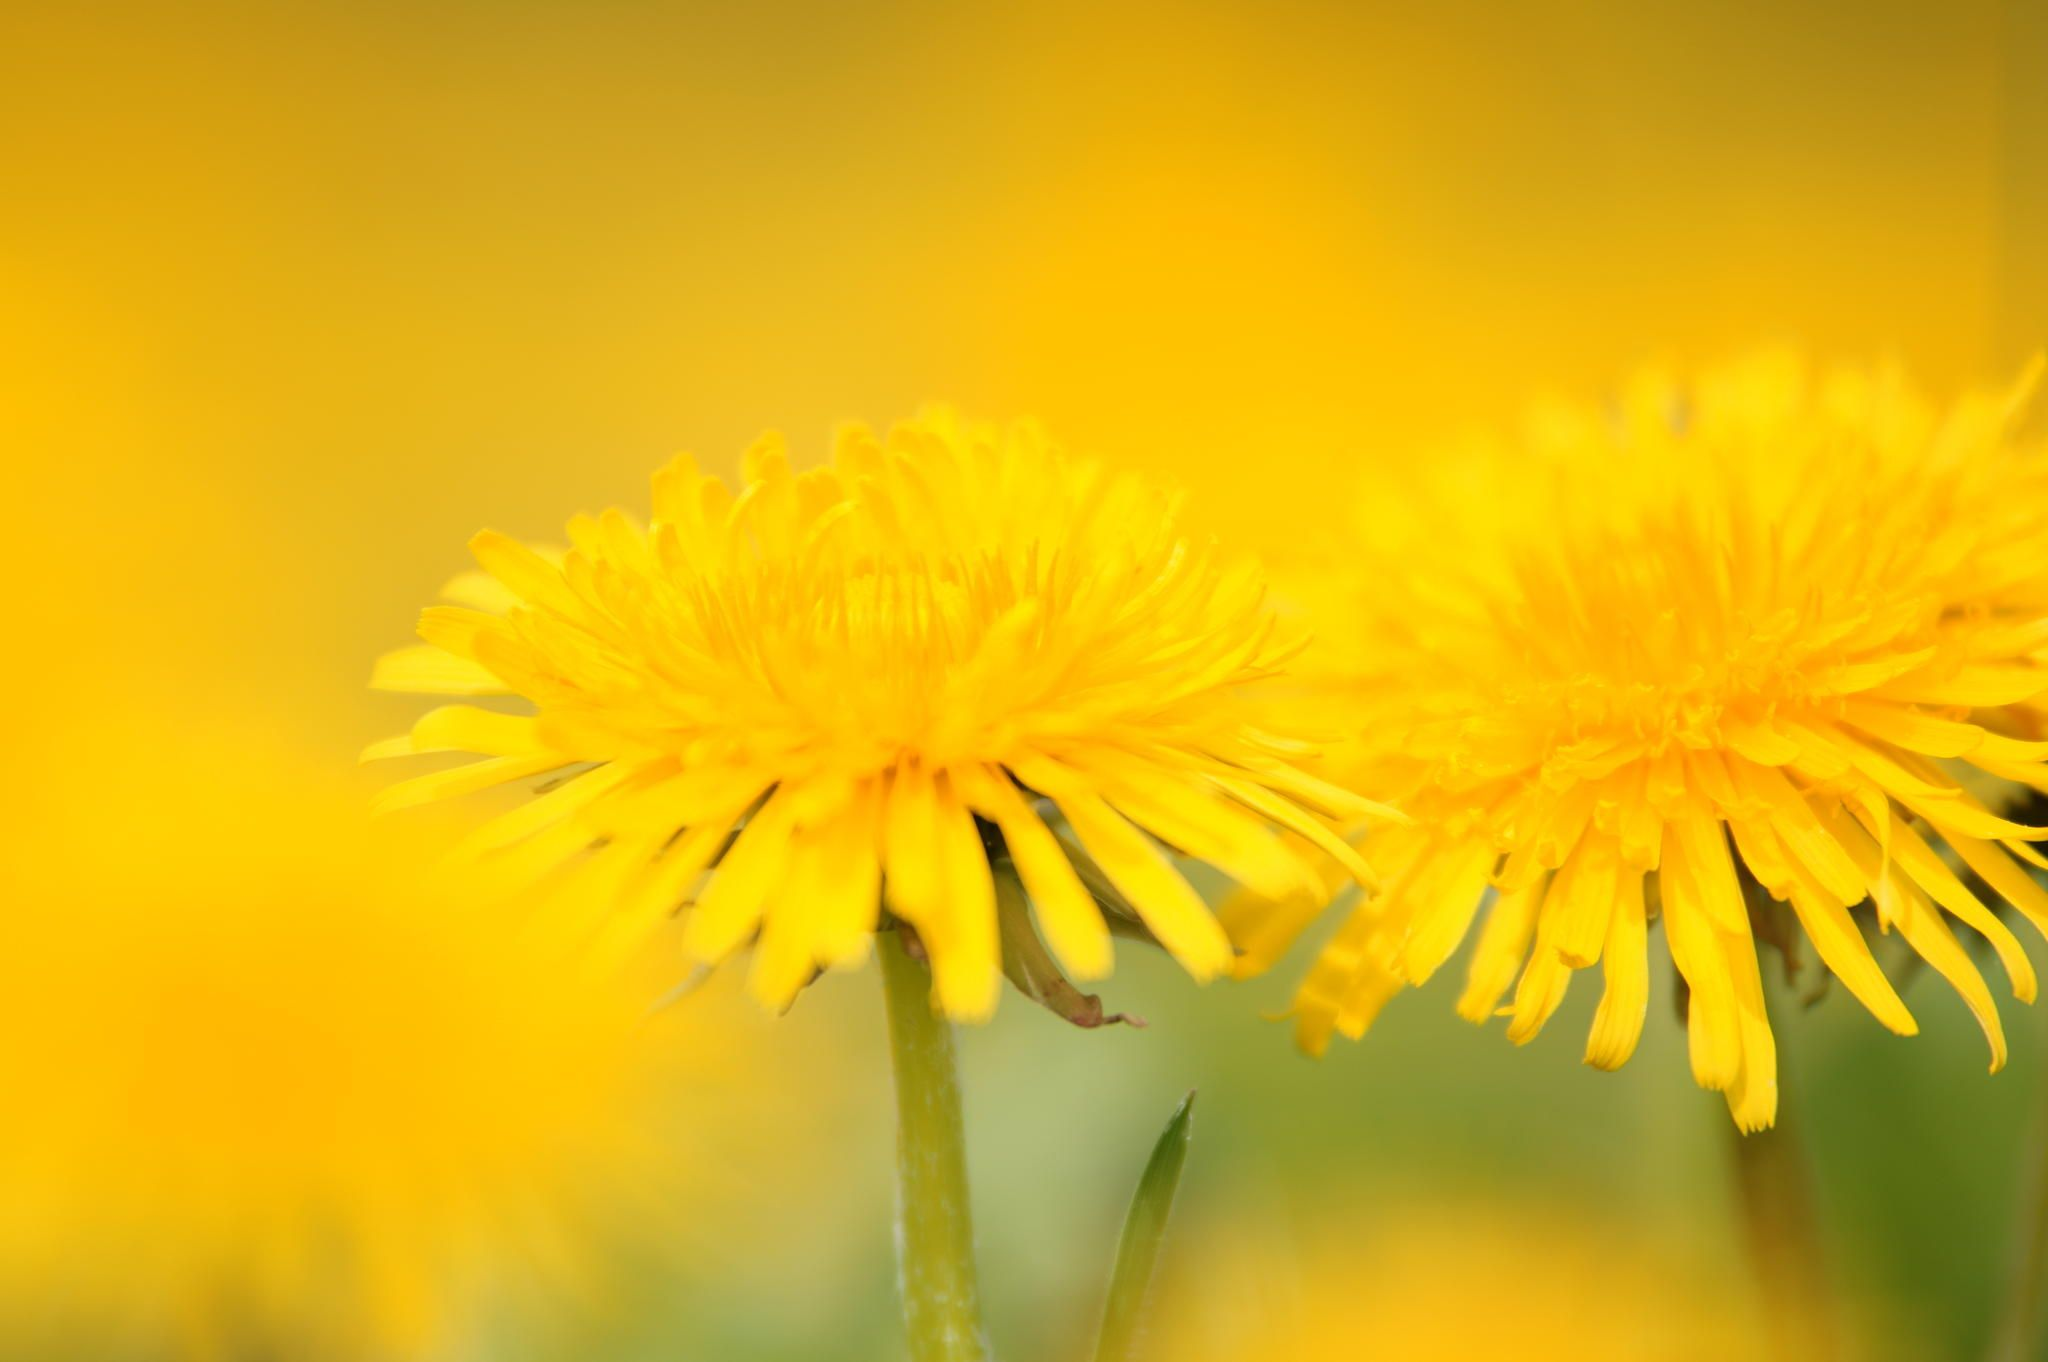 Photograph Dandelion by Tanja Riedel on 500px